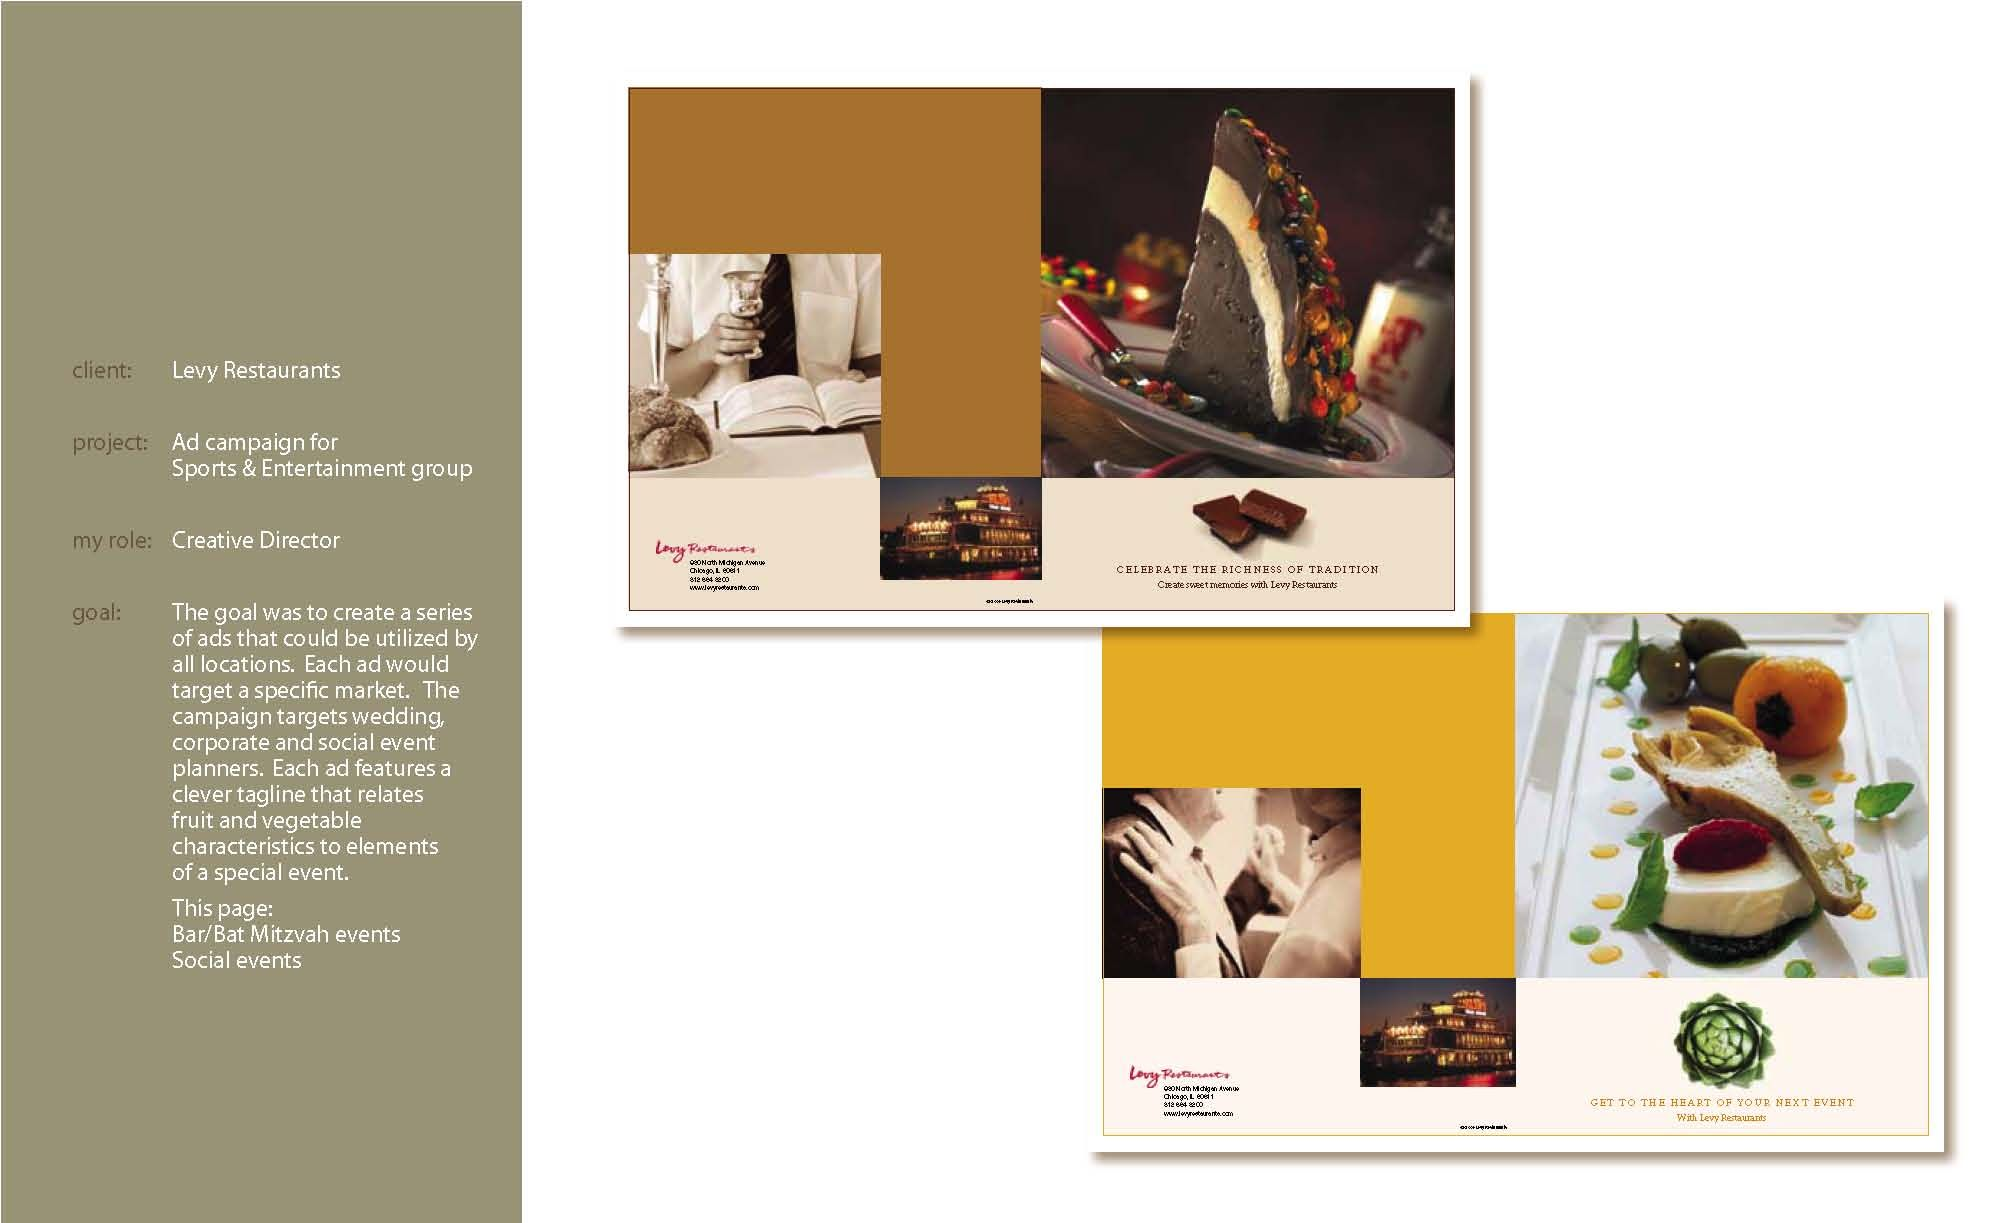 Fabelhaft graphic design digital portfolio pdf | Kirsten Mentley Studio #NA_14